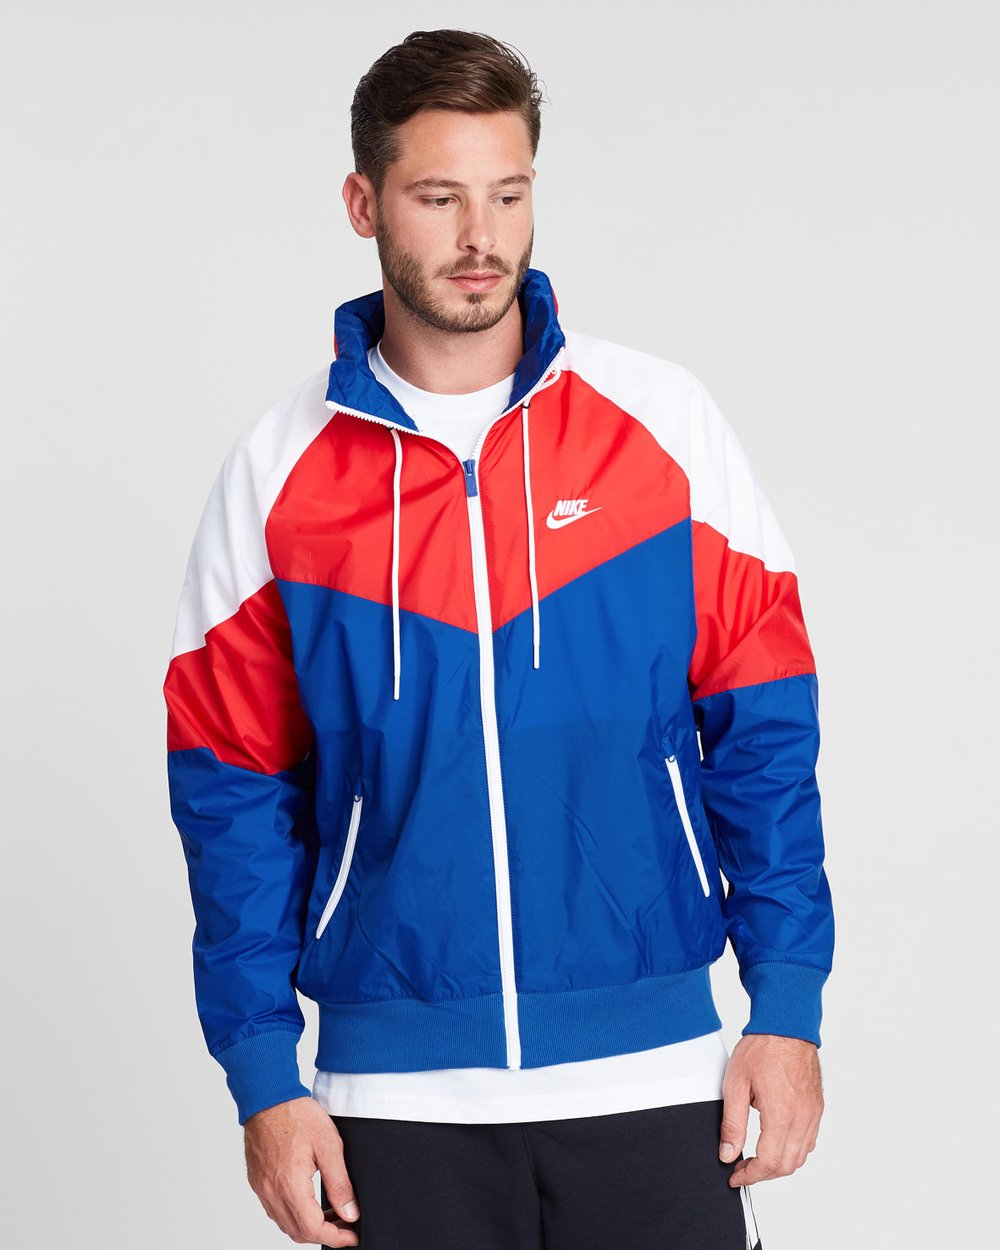 925c5be3cc Sportswear Windrunner Jacket by Nike Online